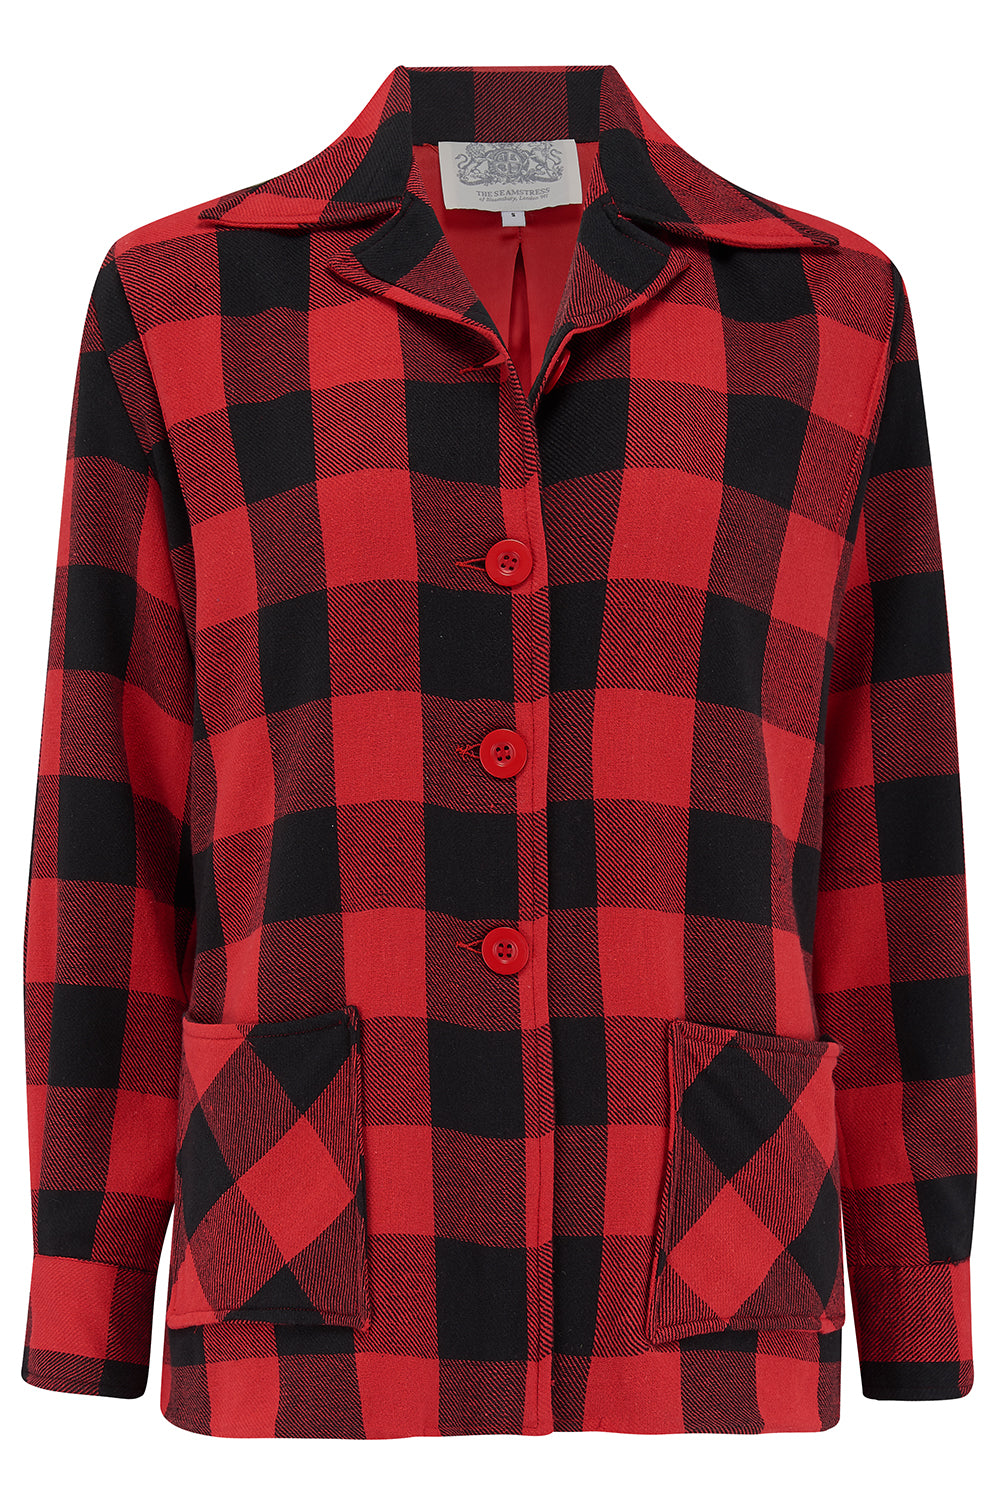 1940s Coats & Jackets Fashion History Pearl Pendleton 49er Style Jacket in 40s redblack Buffalo check Classic  Authentic 1940s Vintage Style £85.00 AT vintagedancer.com